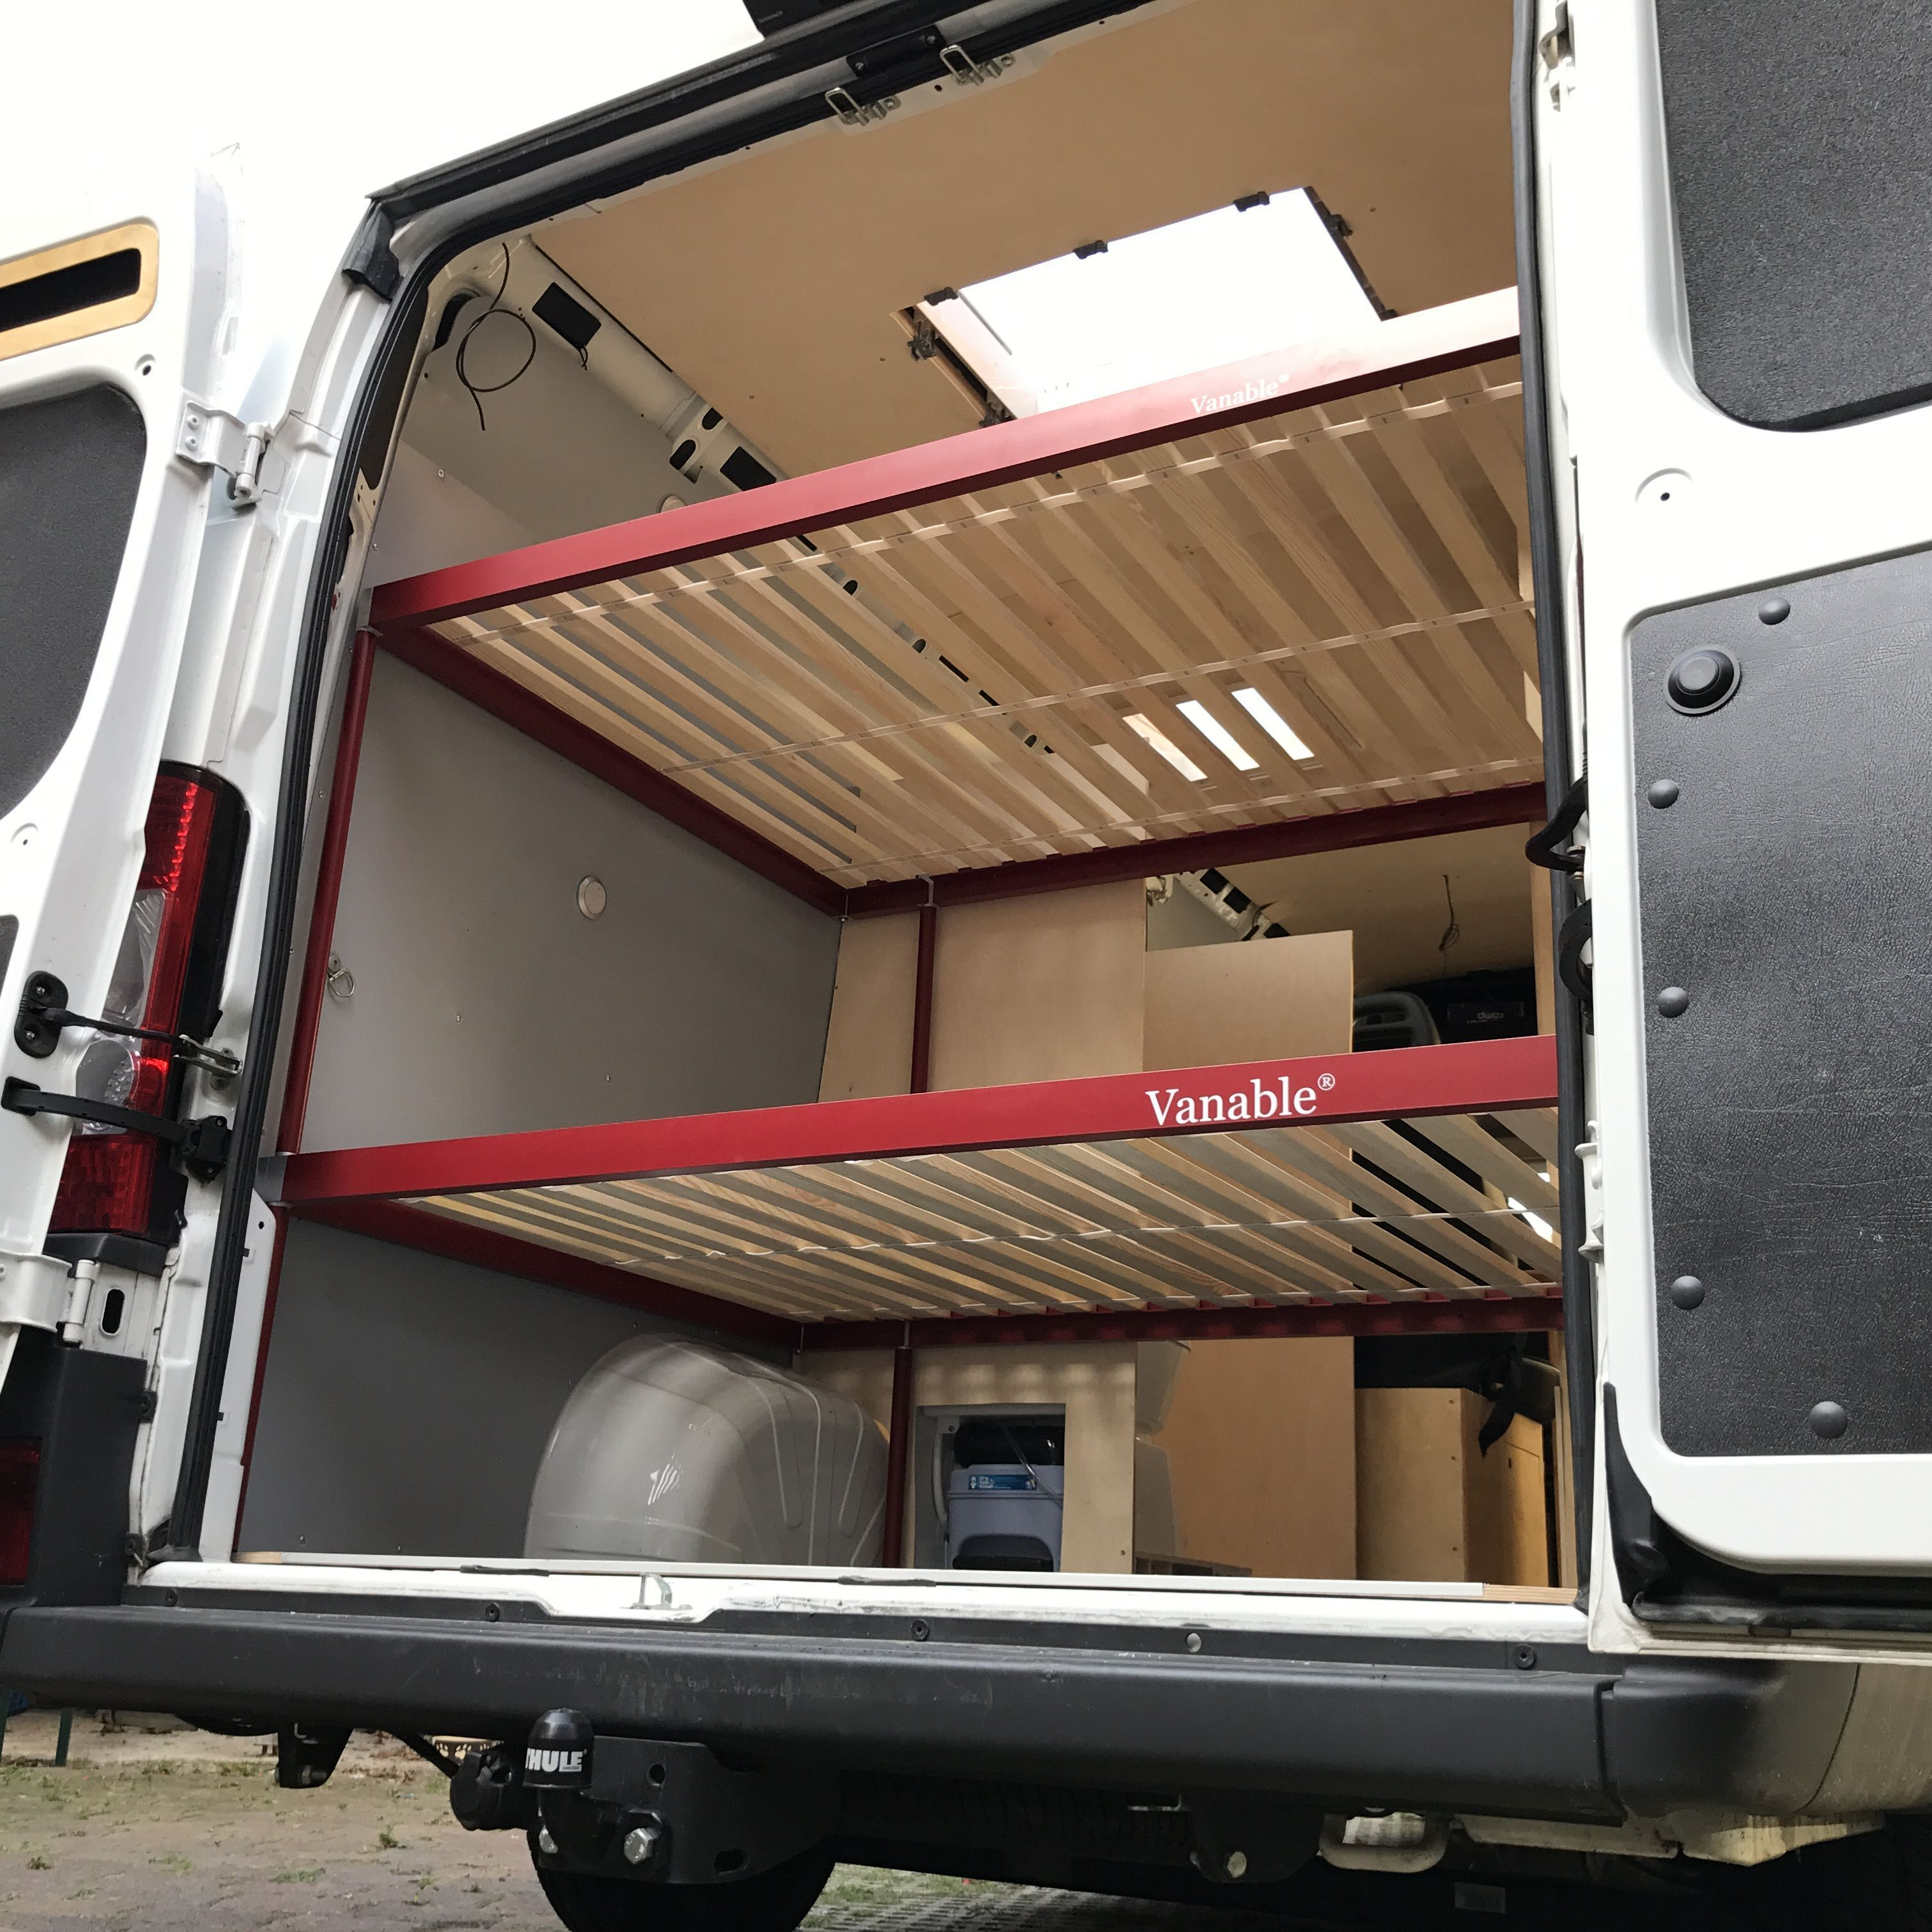 The Vanable Bunk Bed In The Fiat Ducato In 2020 Met Afbeeldingen